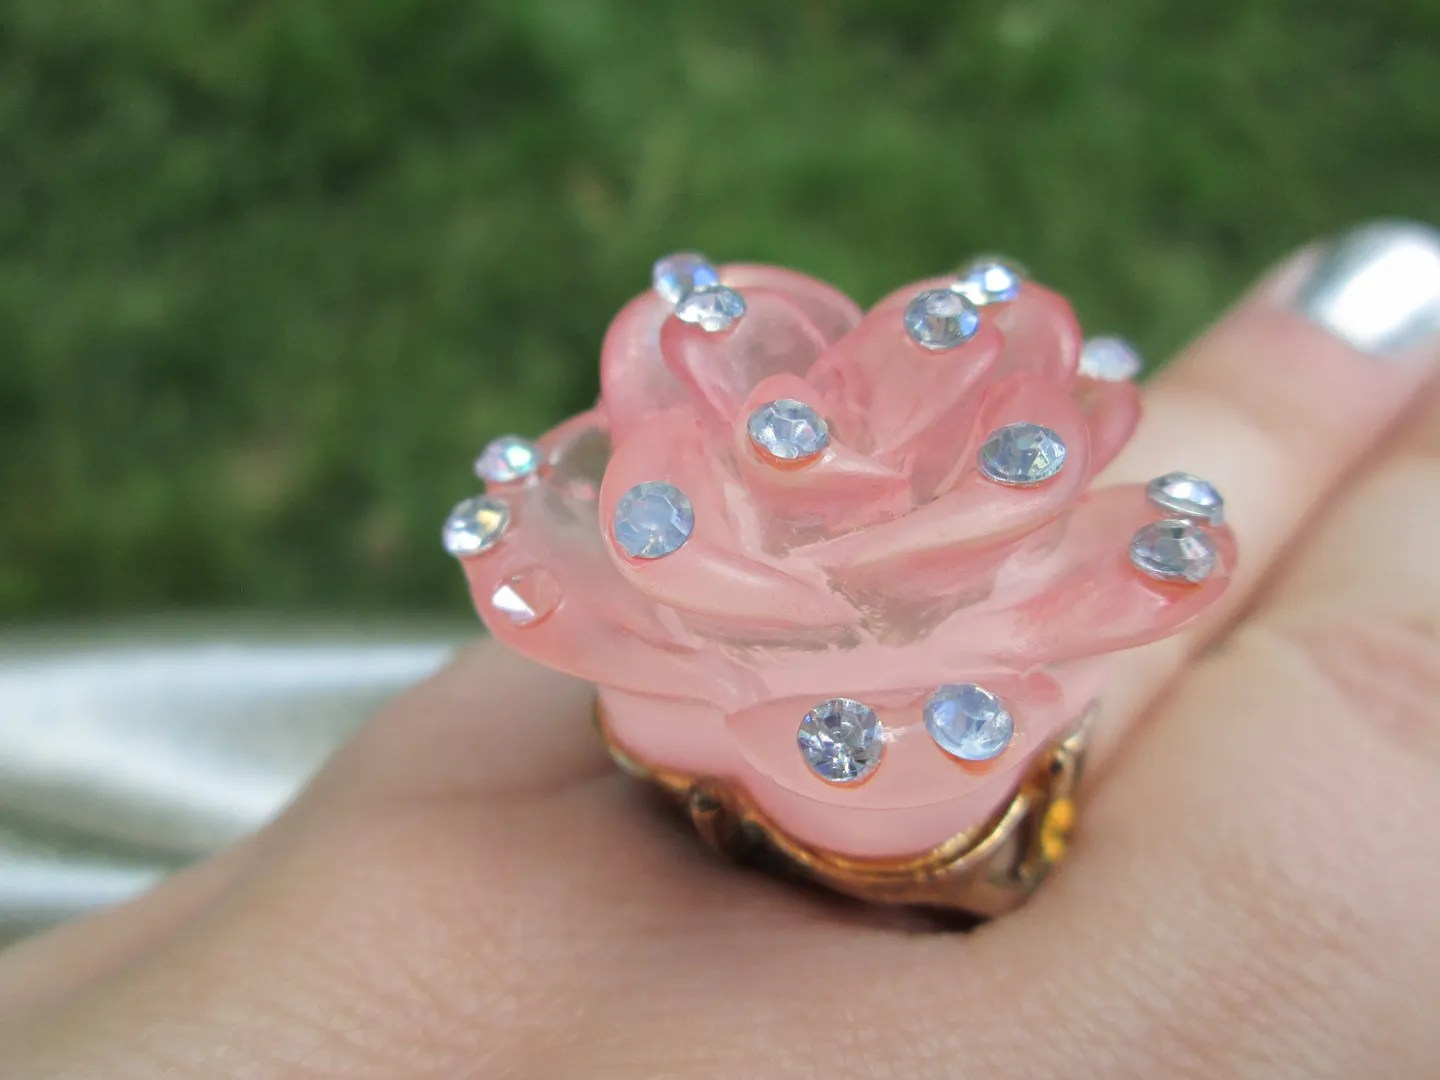 close-up of pink rose statement ring with rhinestones